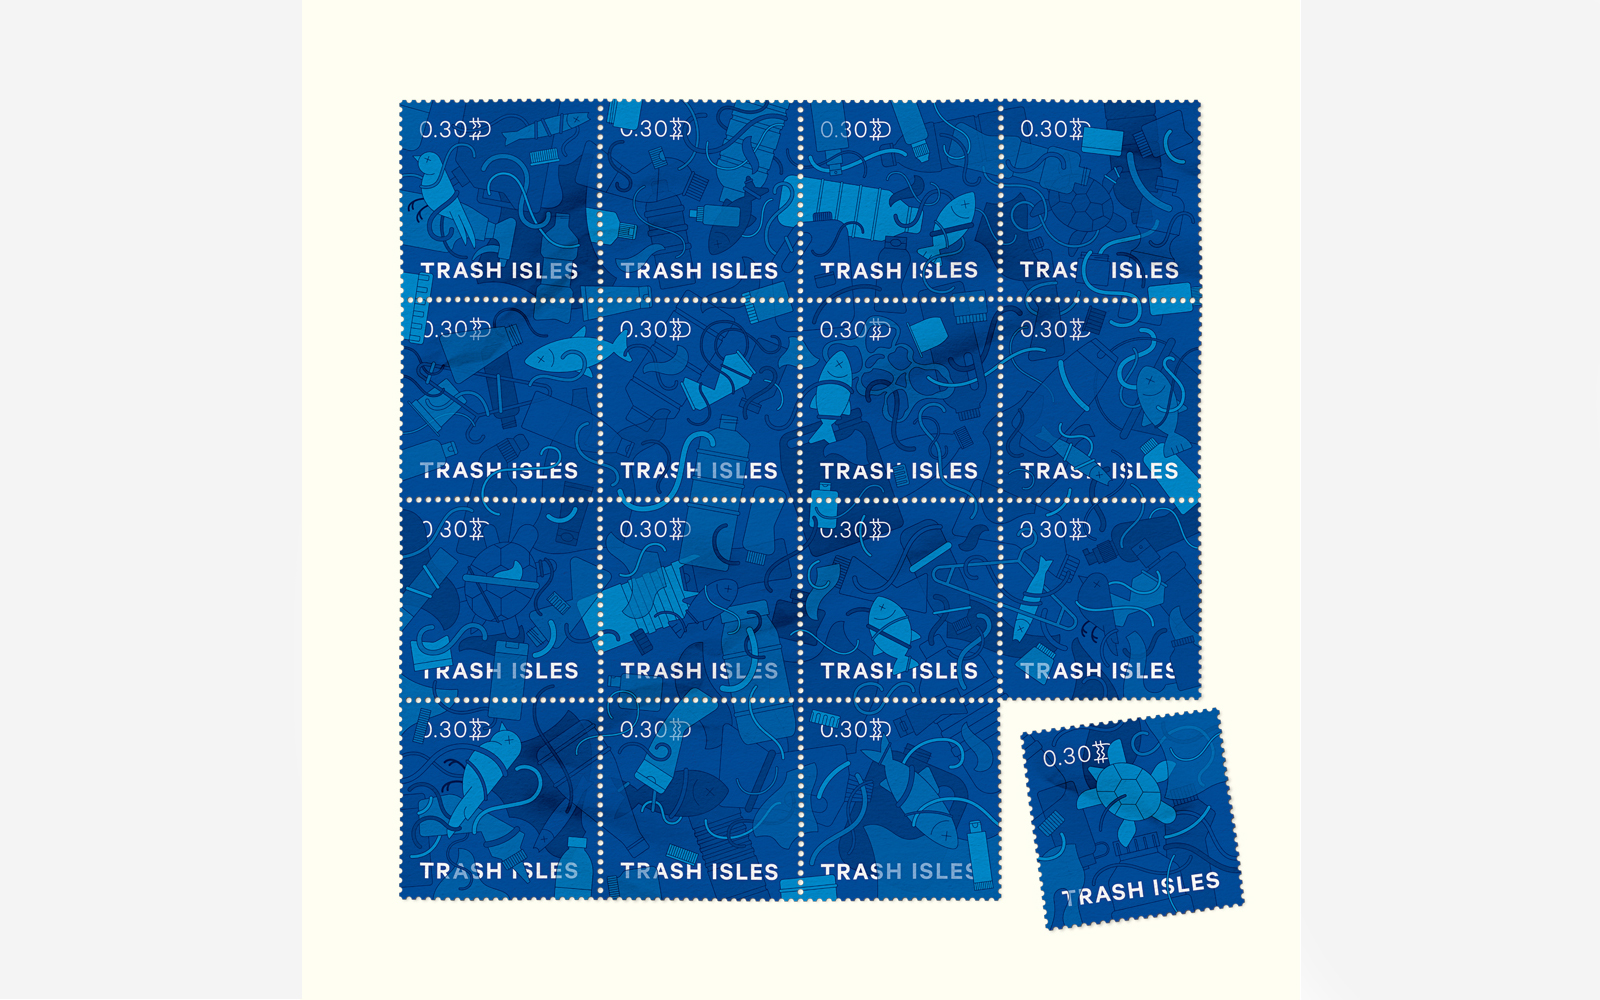 Trash Isles stamps